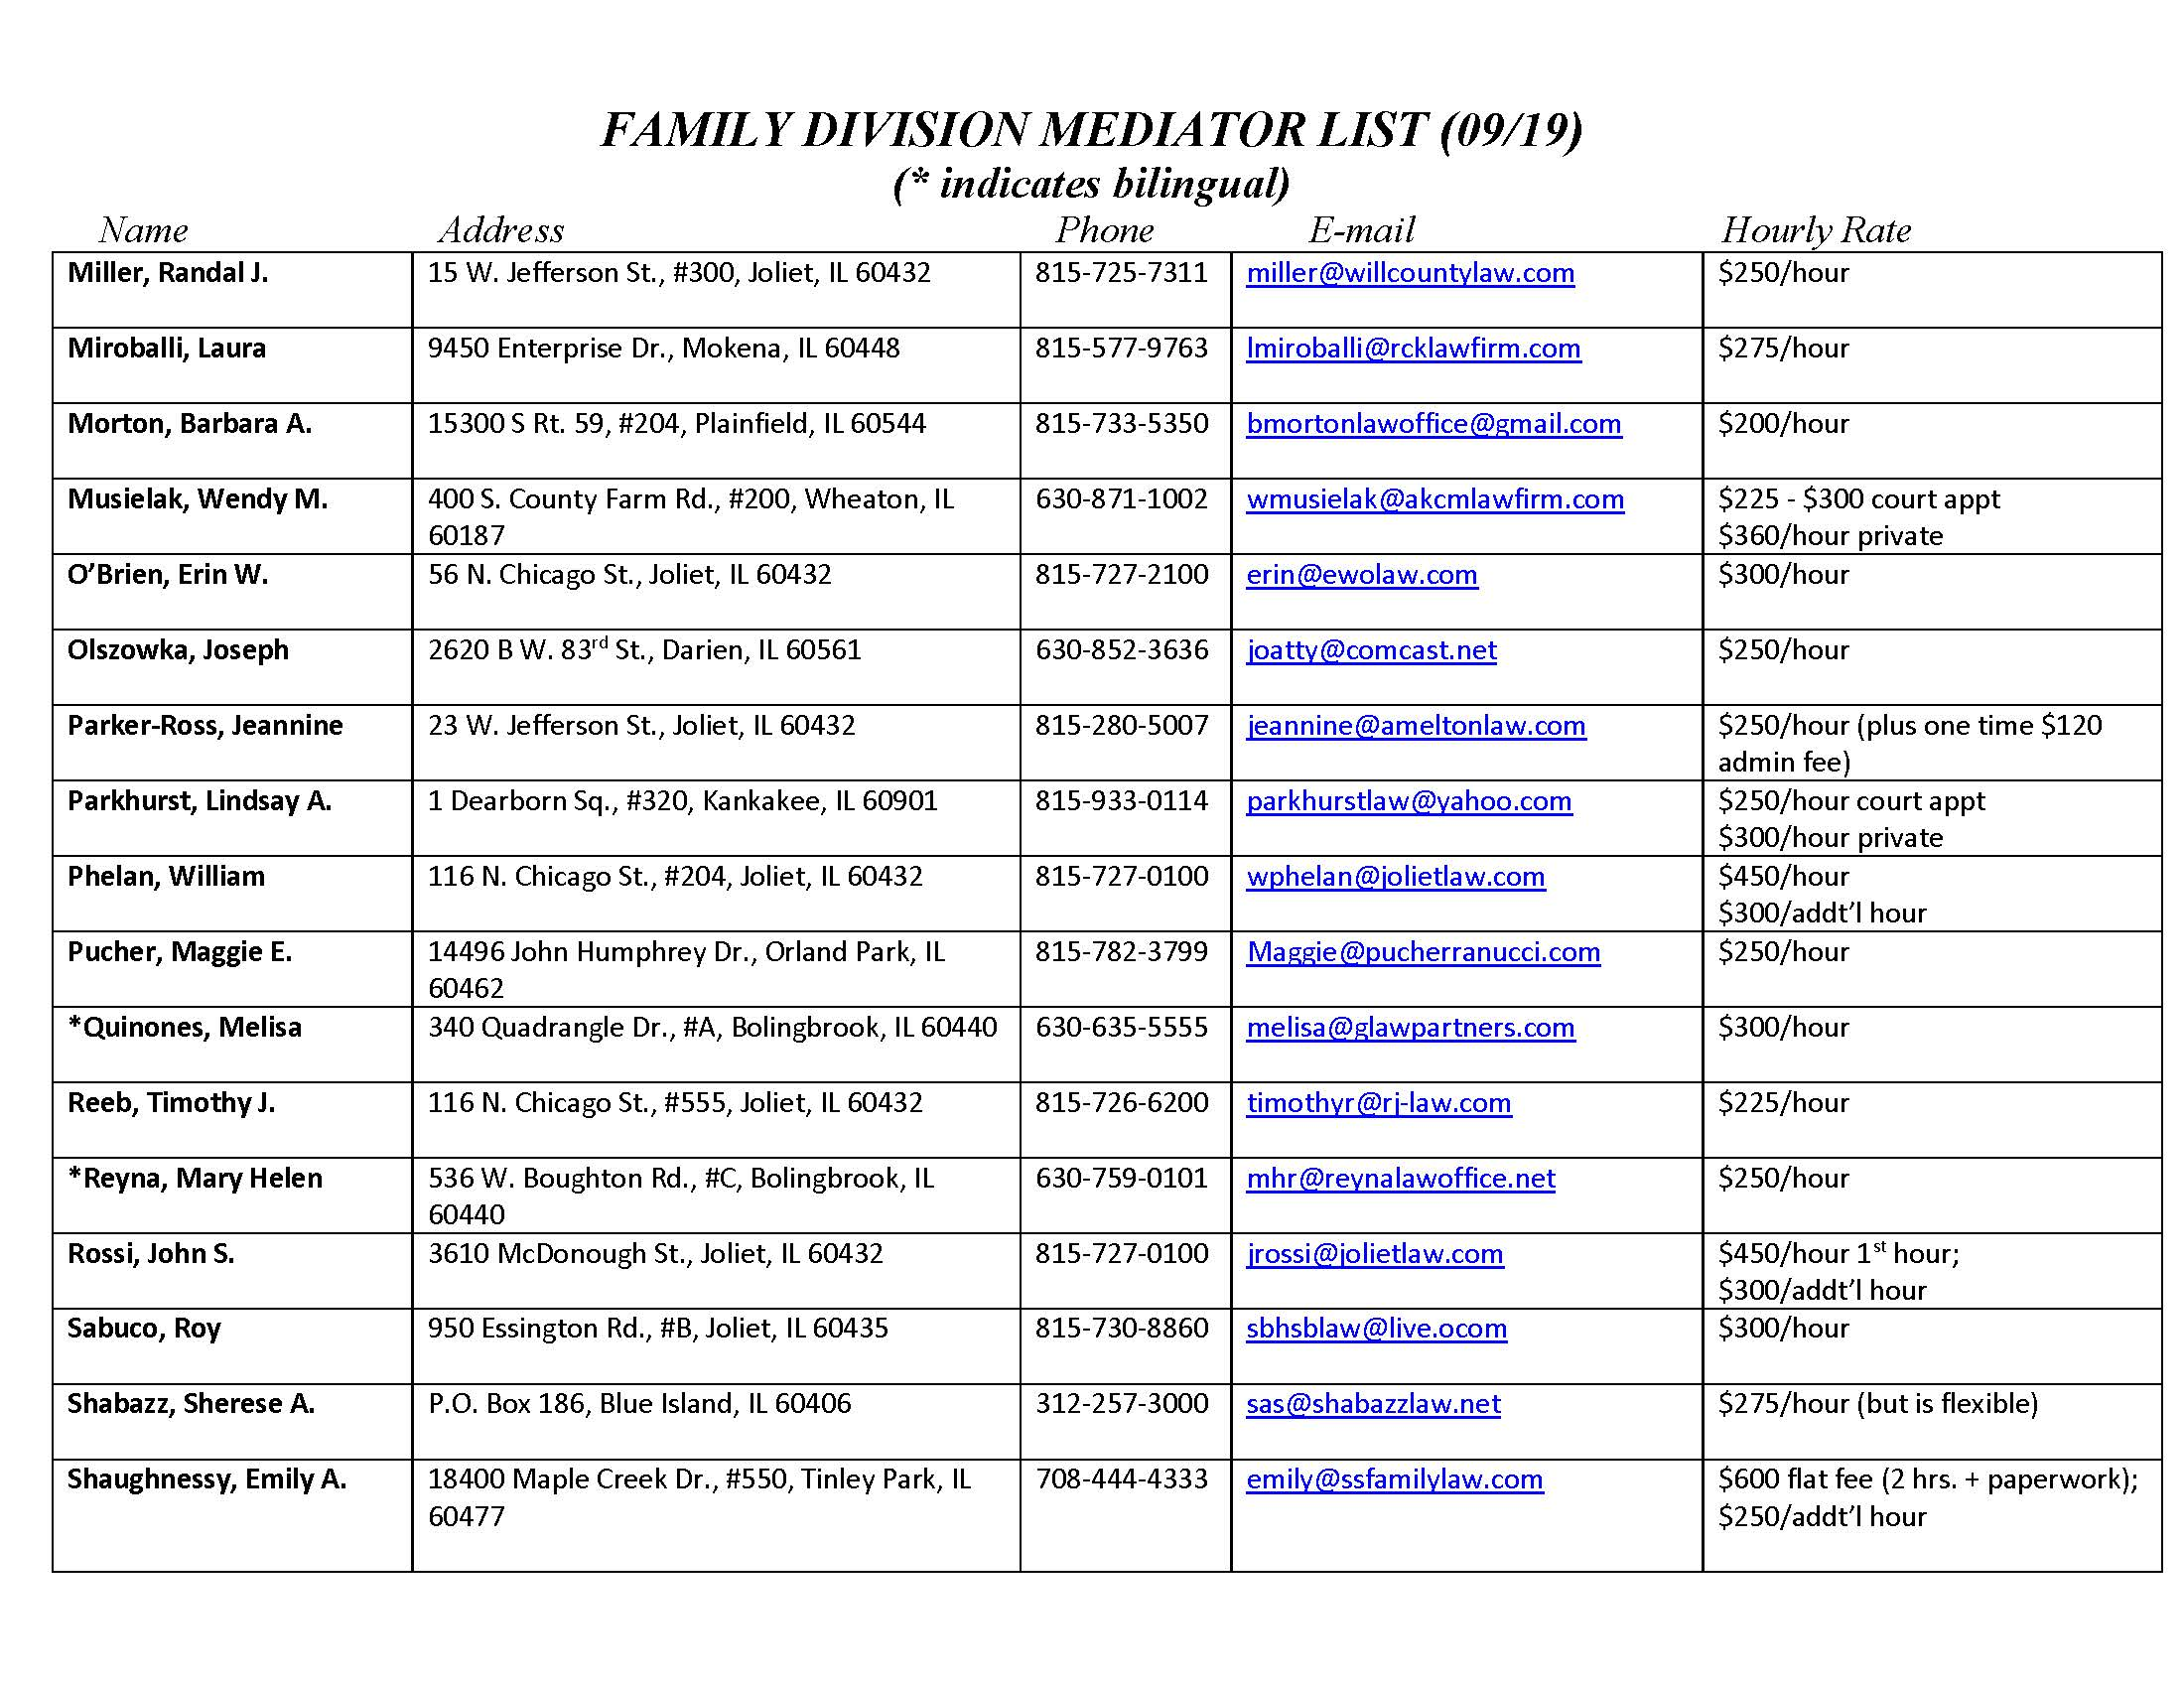 Family Mediator List pg. 4